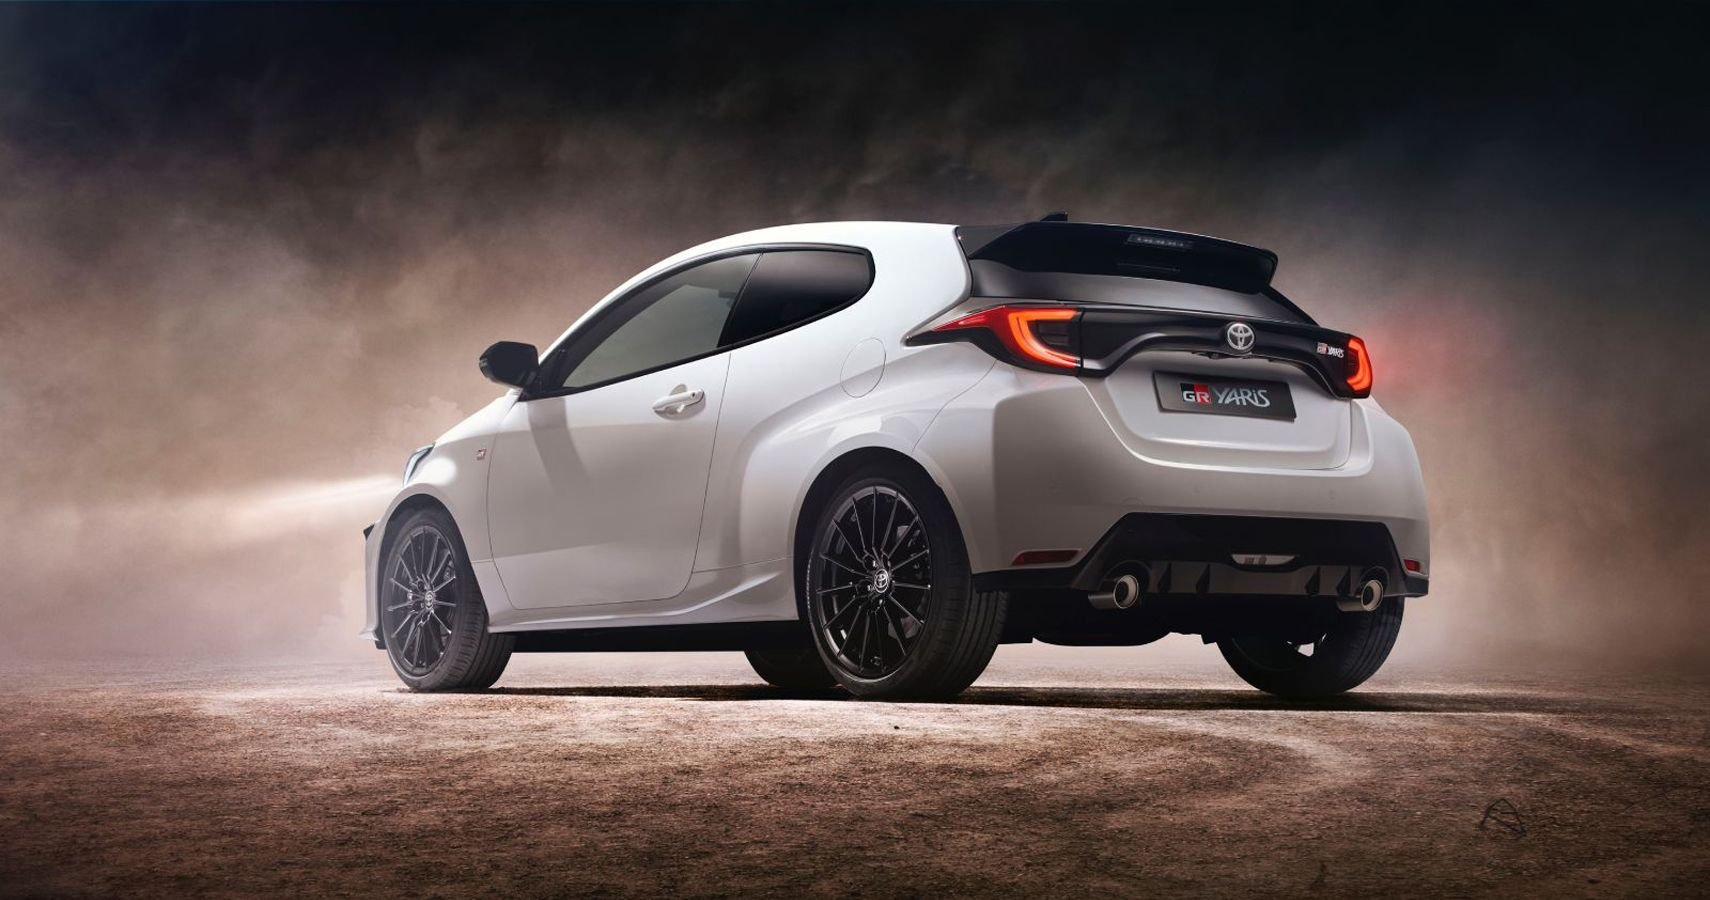 Ranking The Fastest Hot Hatches Of 2021